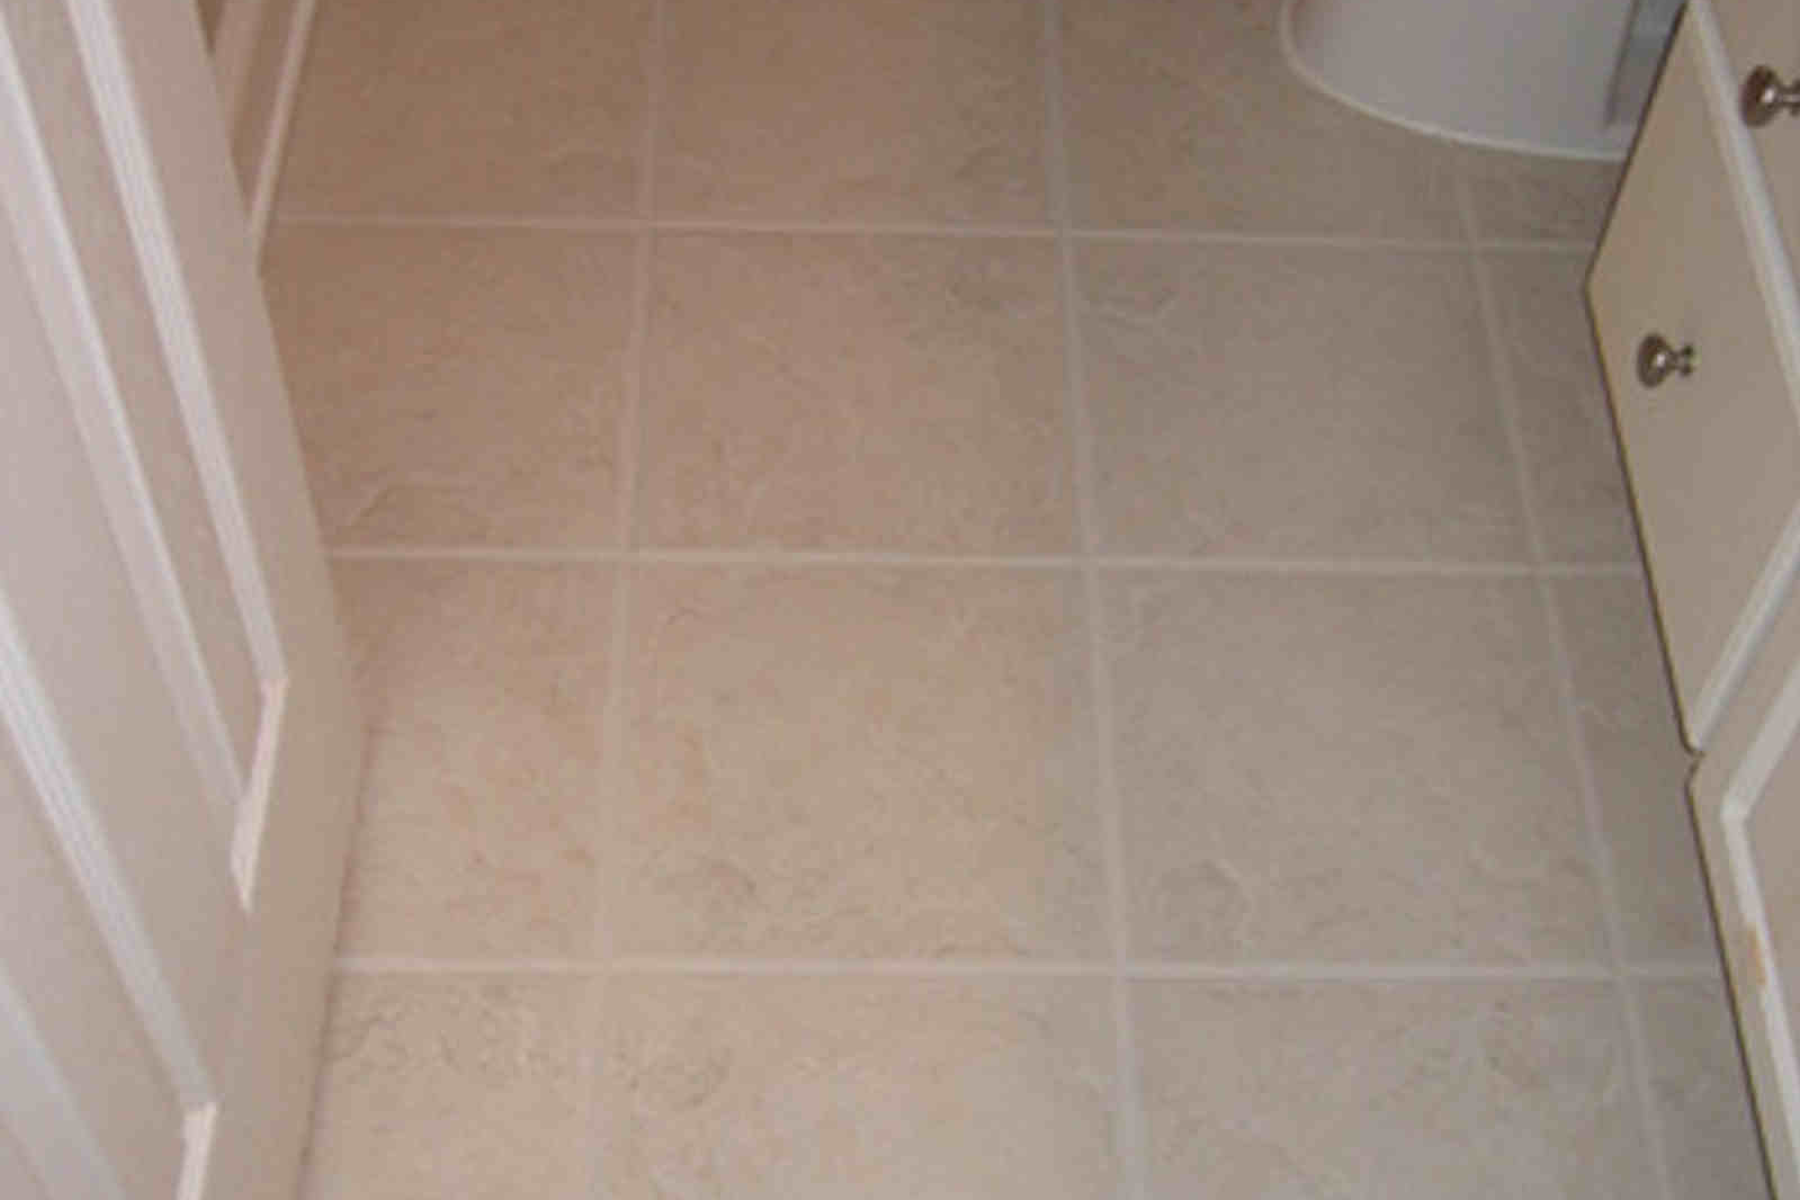 Badly stained bathroom tiles after colour sealing the grout